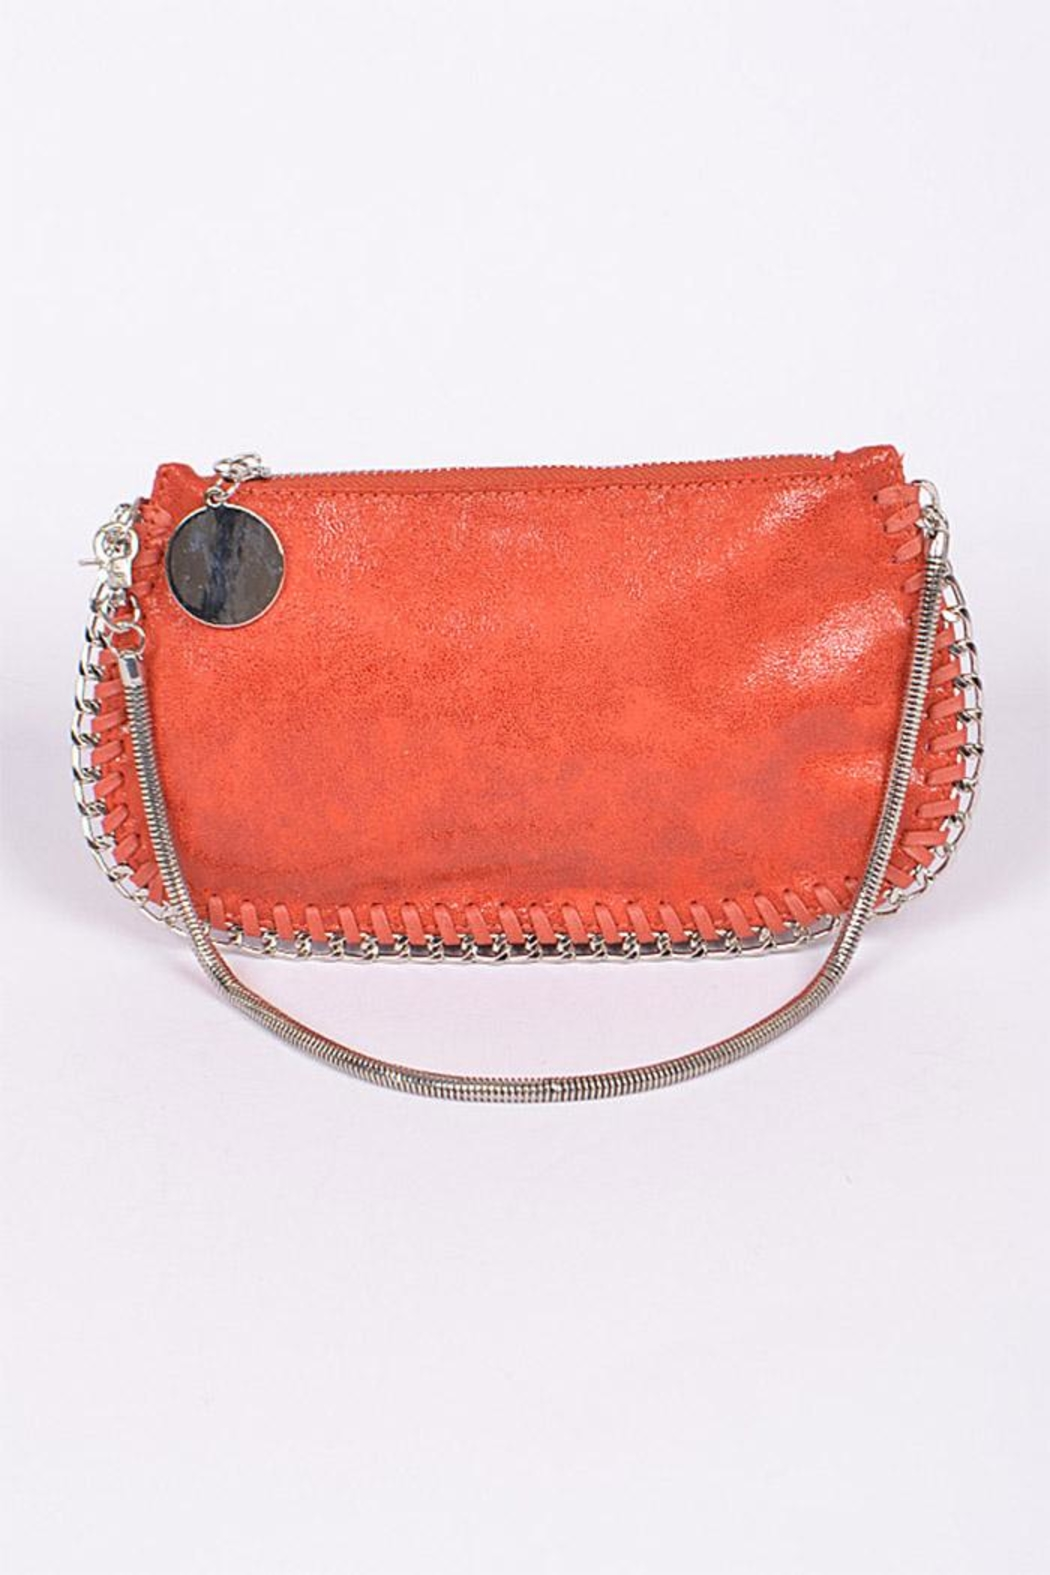 3AM FOREVER Chain Twined Clutch - Front Cropped Image